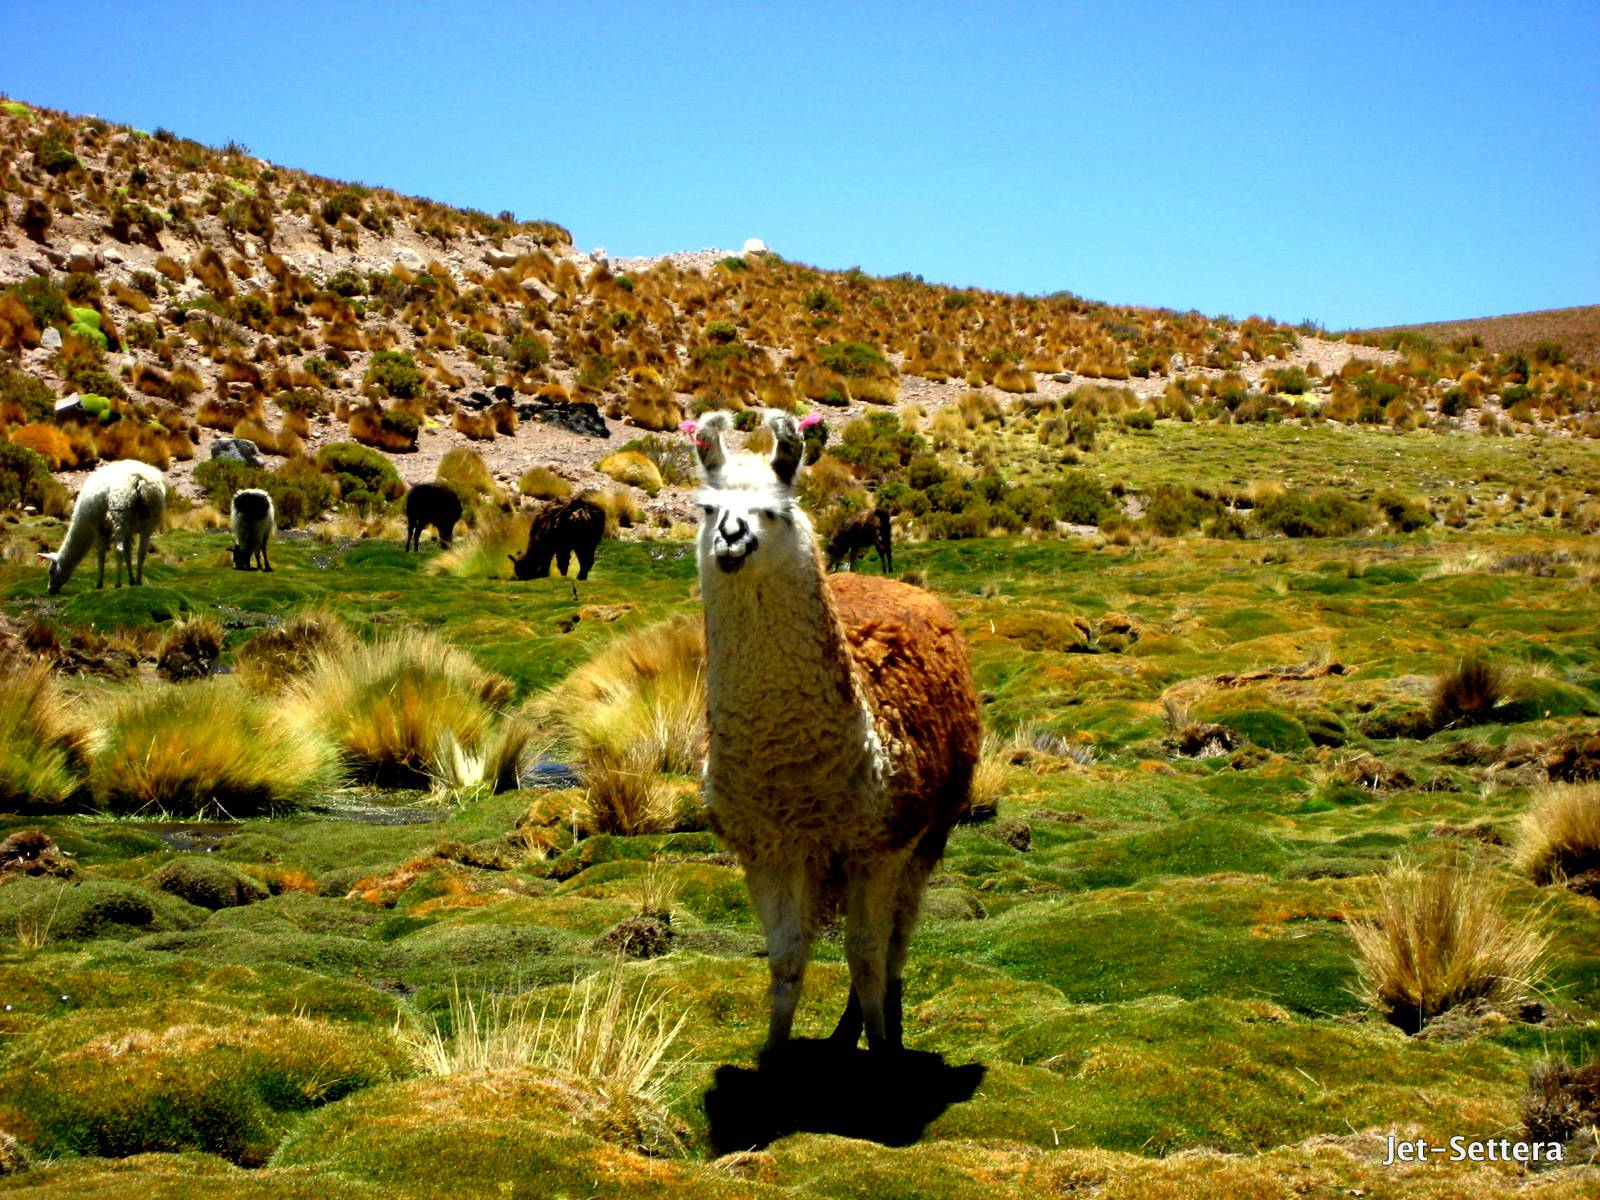 Lamas in Peru - Things to do in Machu Picchu